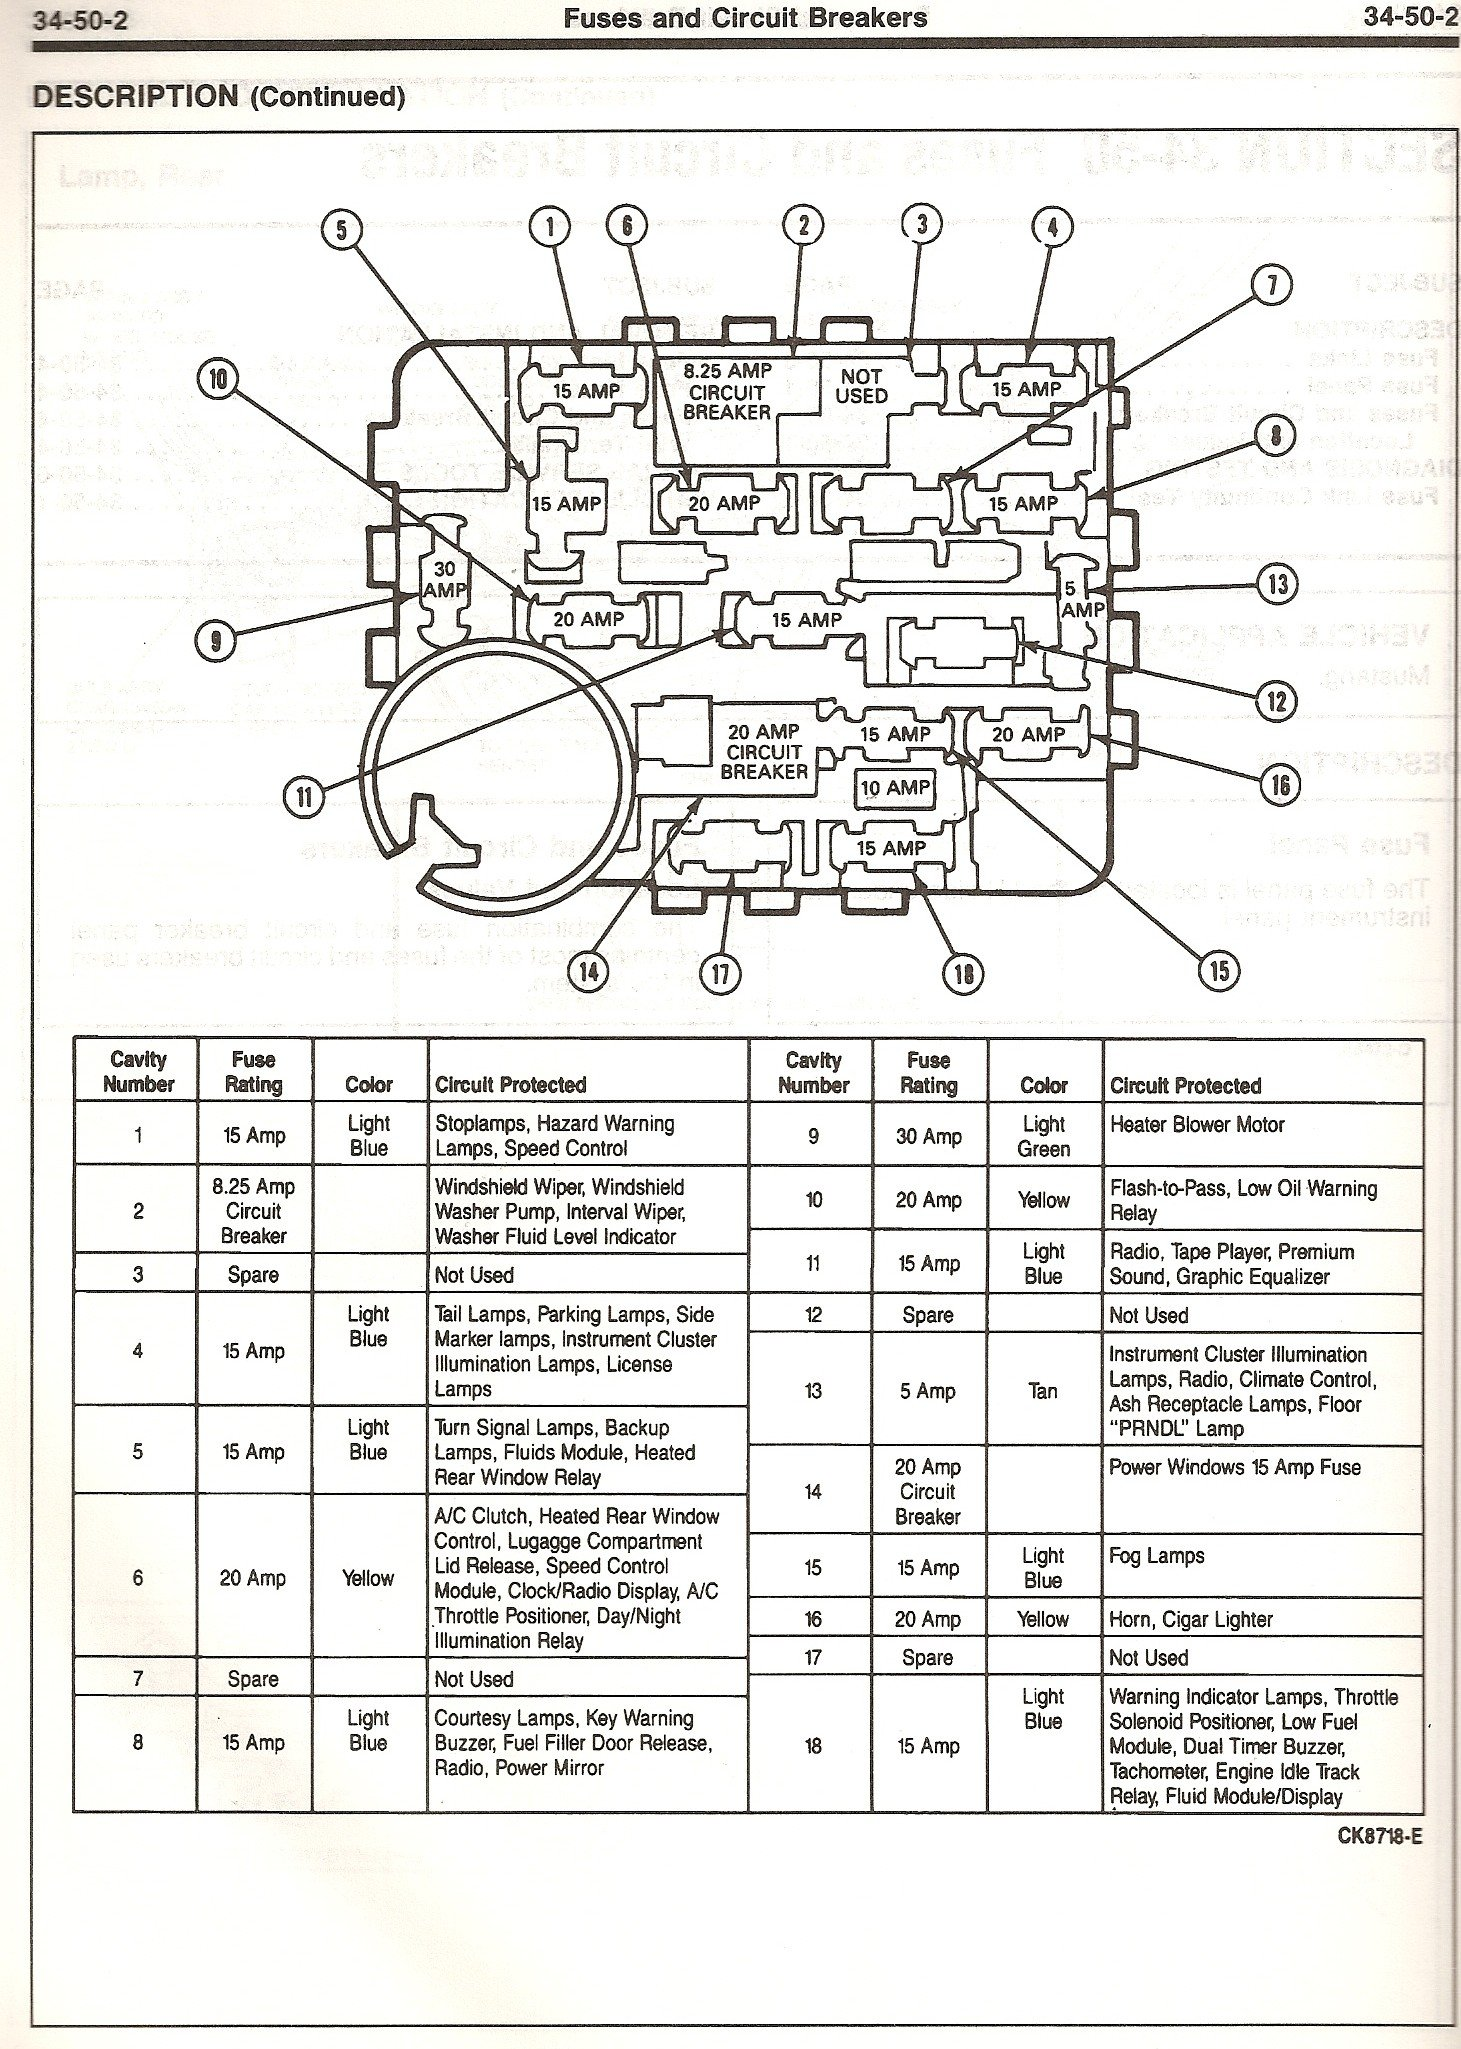 30633d1185070172 1990 2 3 mustang missing fuse panel diagram scan7 1990 2 3 mustang missing fuse panel diagram ford mustang forum 1992 mustang fuse box location at bayanpartner.co